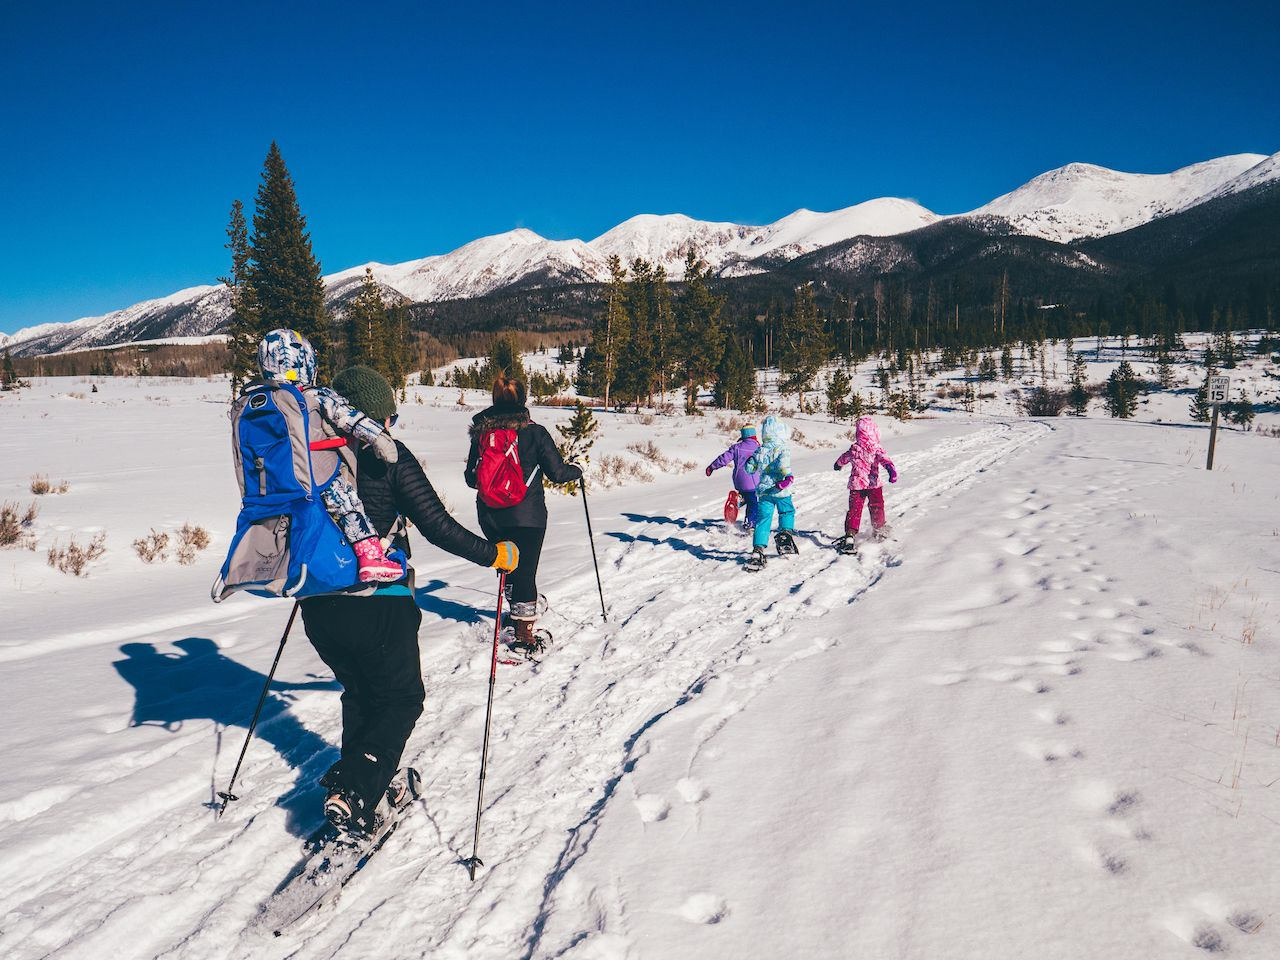 Family cross country skiing in the mountains